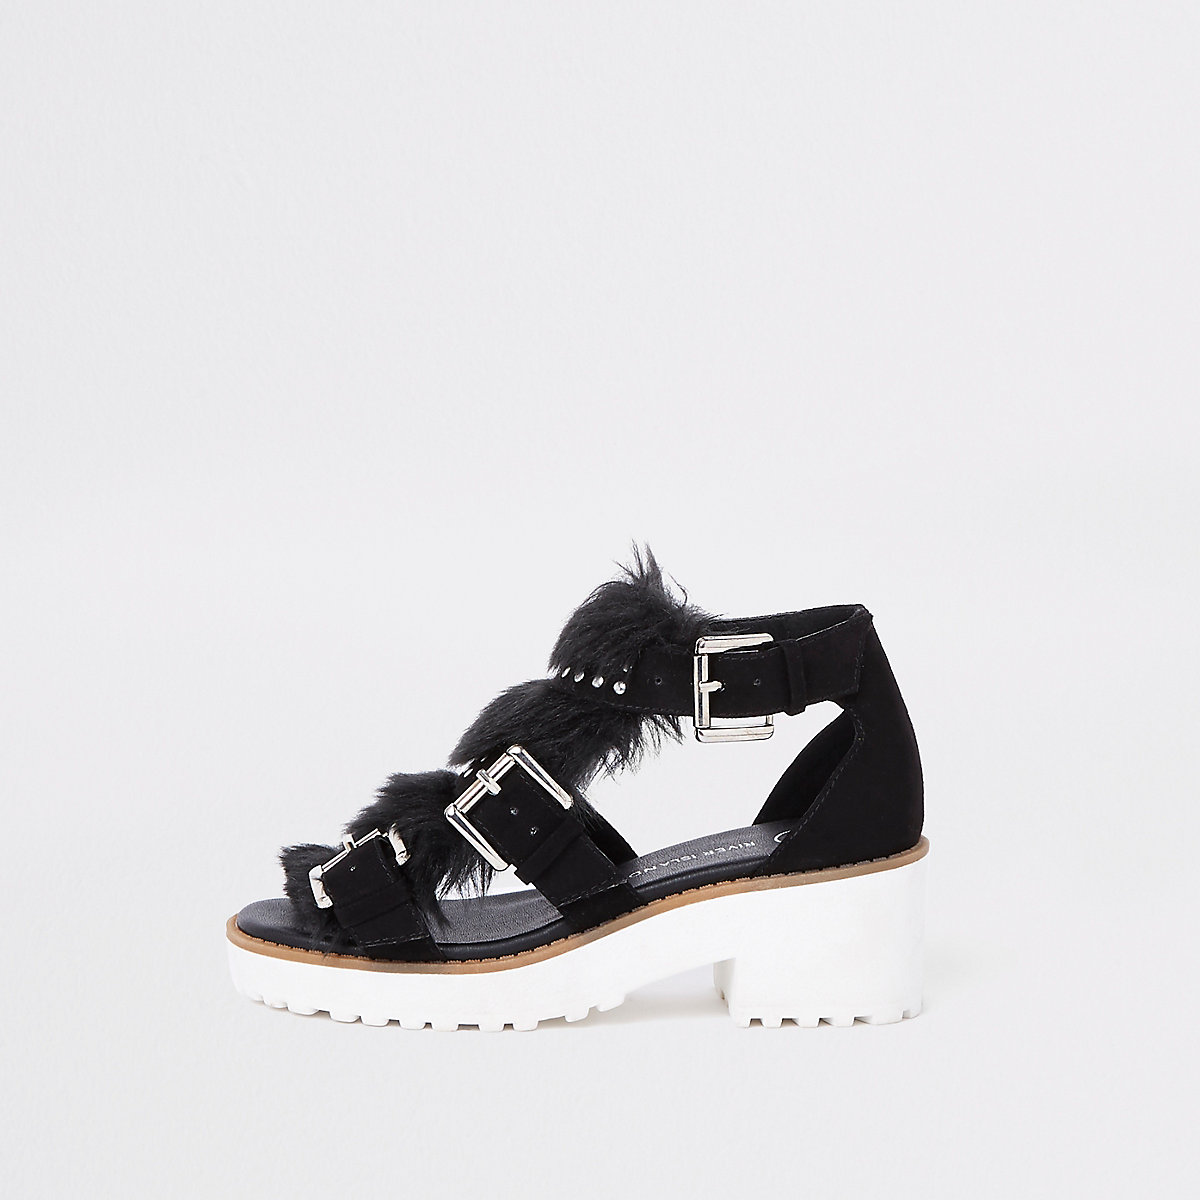 Girls black stud fur trim clumpy sandals